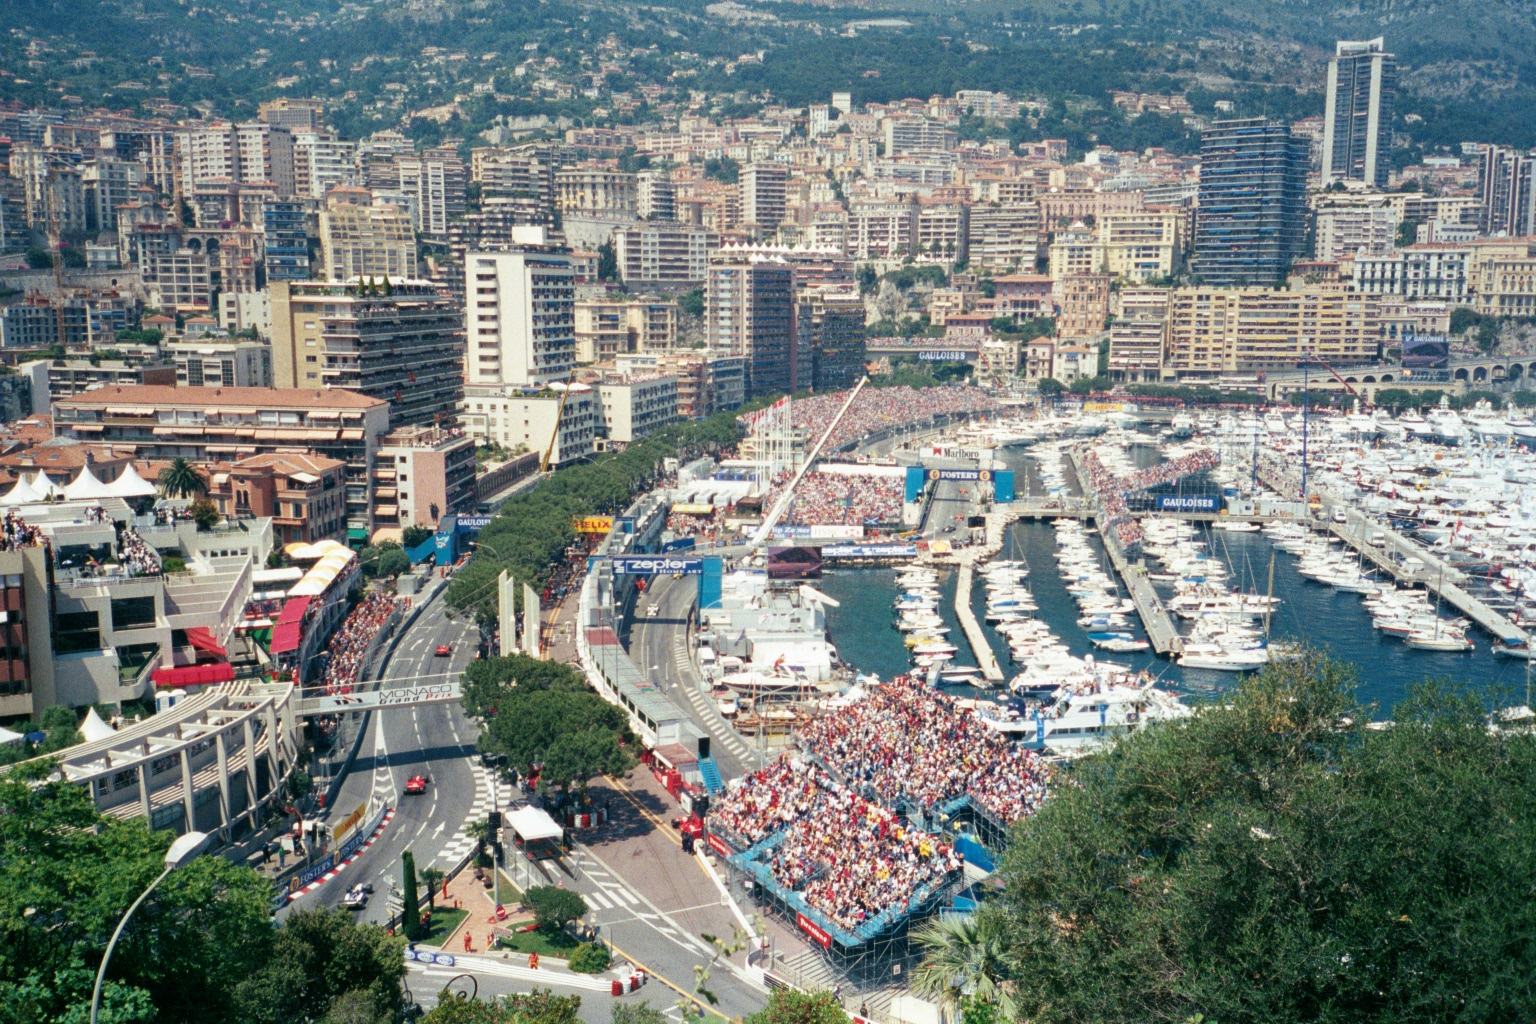 monaco grand prix 2014 advice